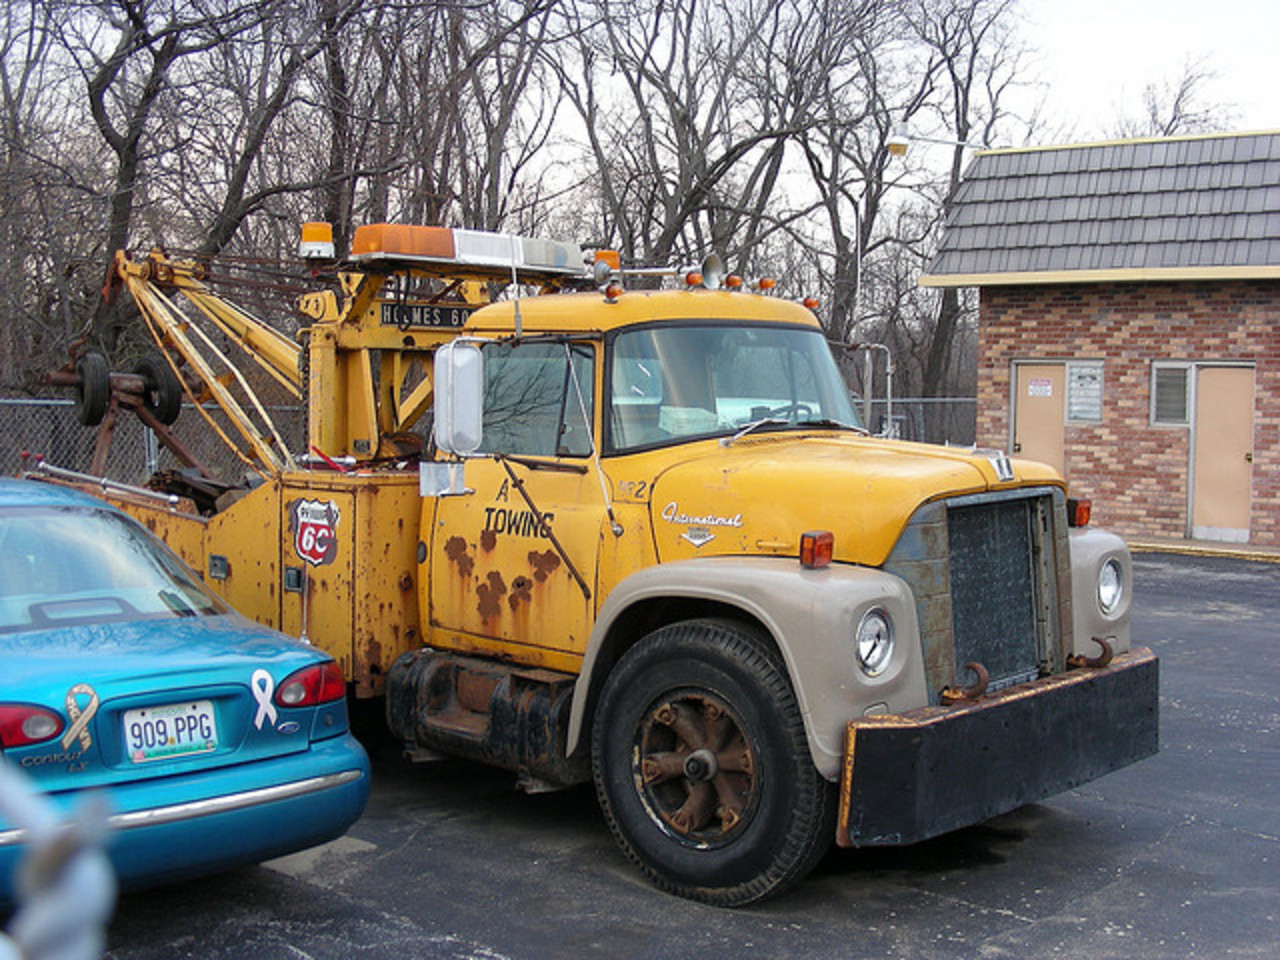 Old International Loadstar Tow Truck | Flickr - Photo Sharing!